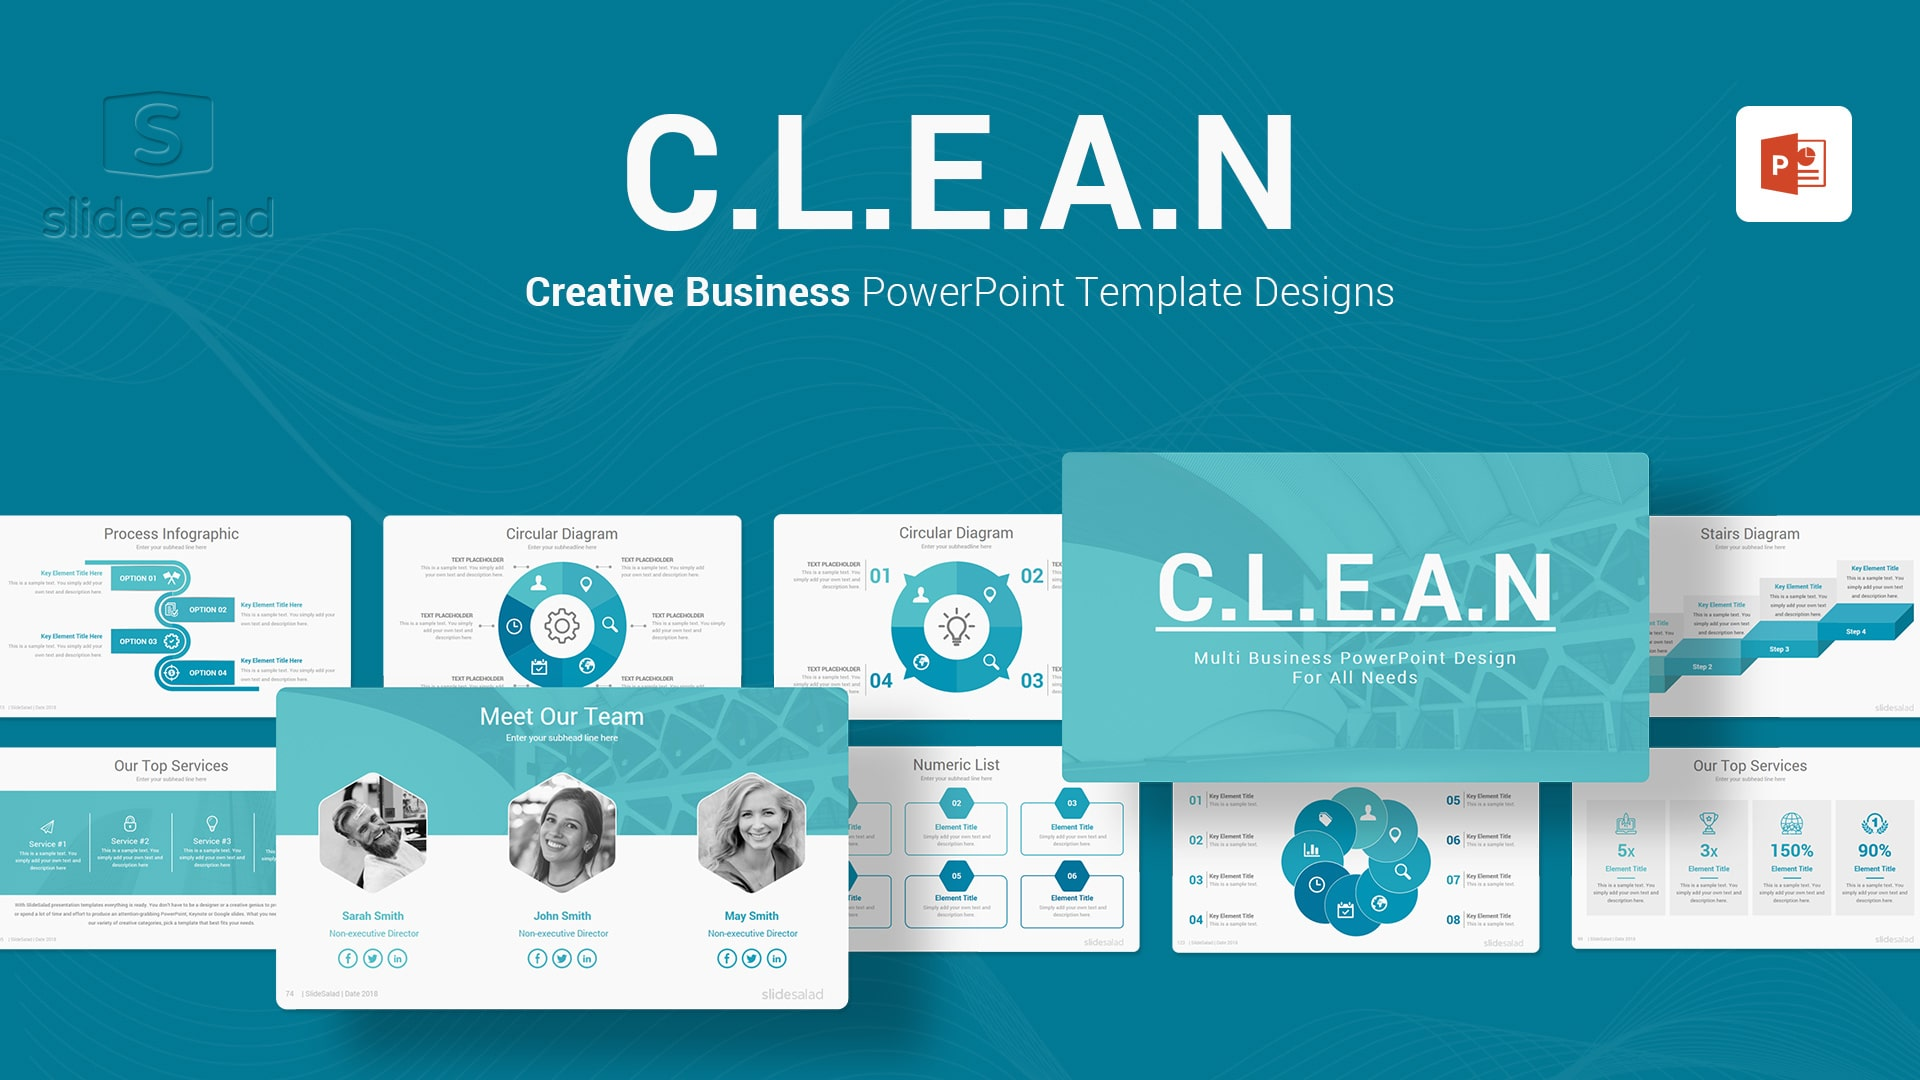 Clean Business PowerPoint Templates - Minimalist Webinar Templates